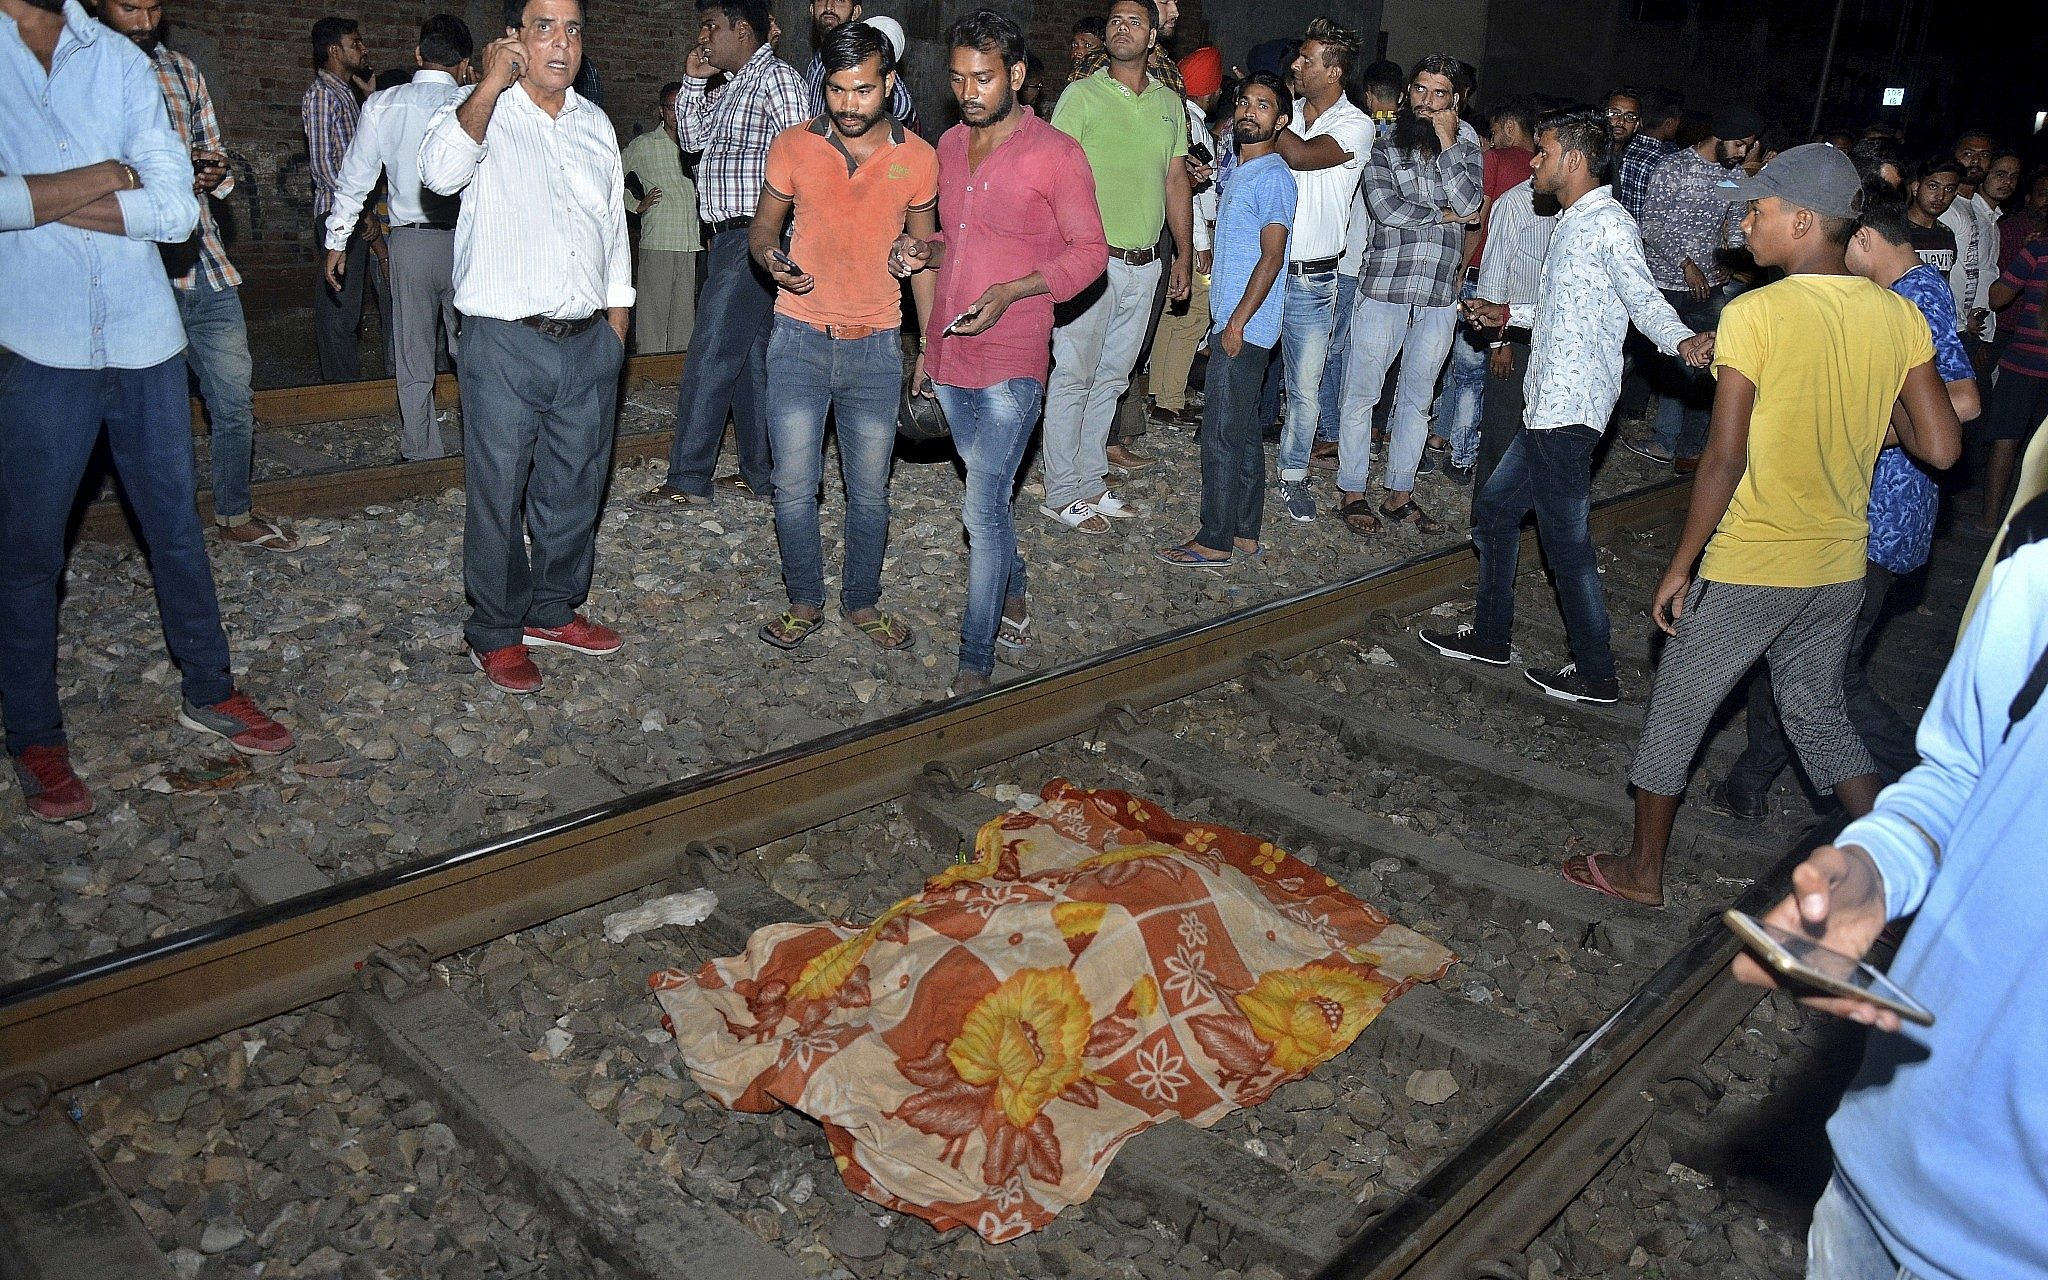 Many Feared Dead as Train Runs Into Crowd Near Amritsar